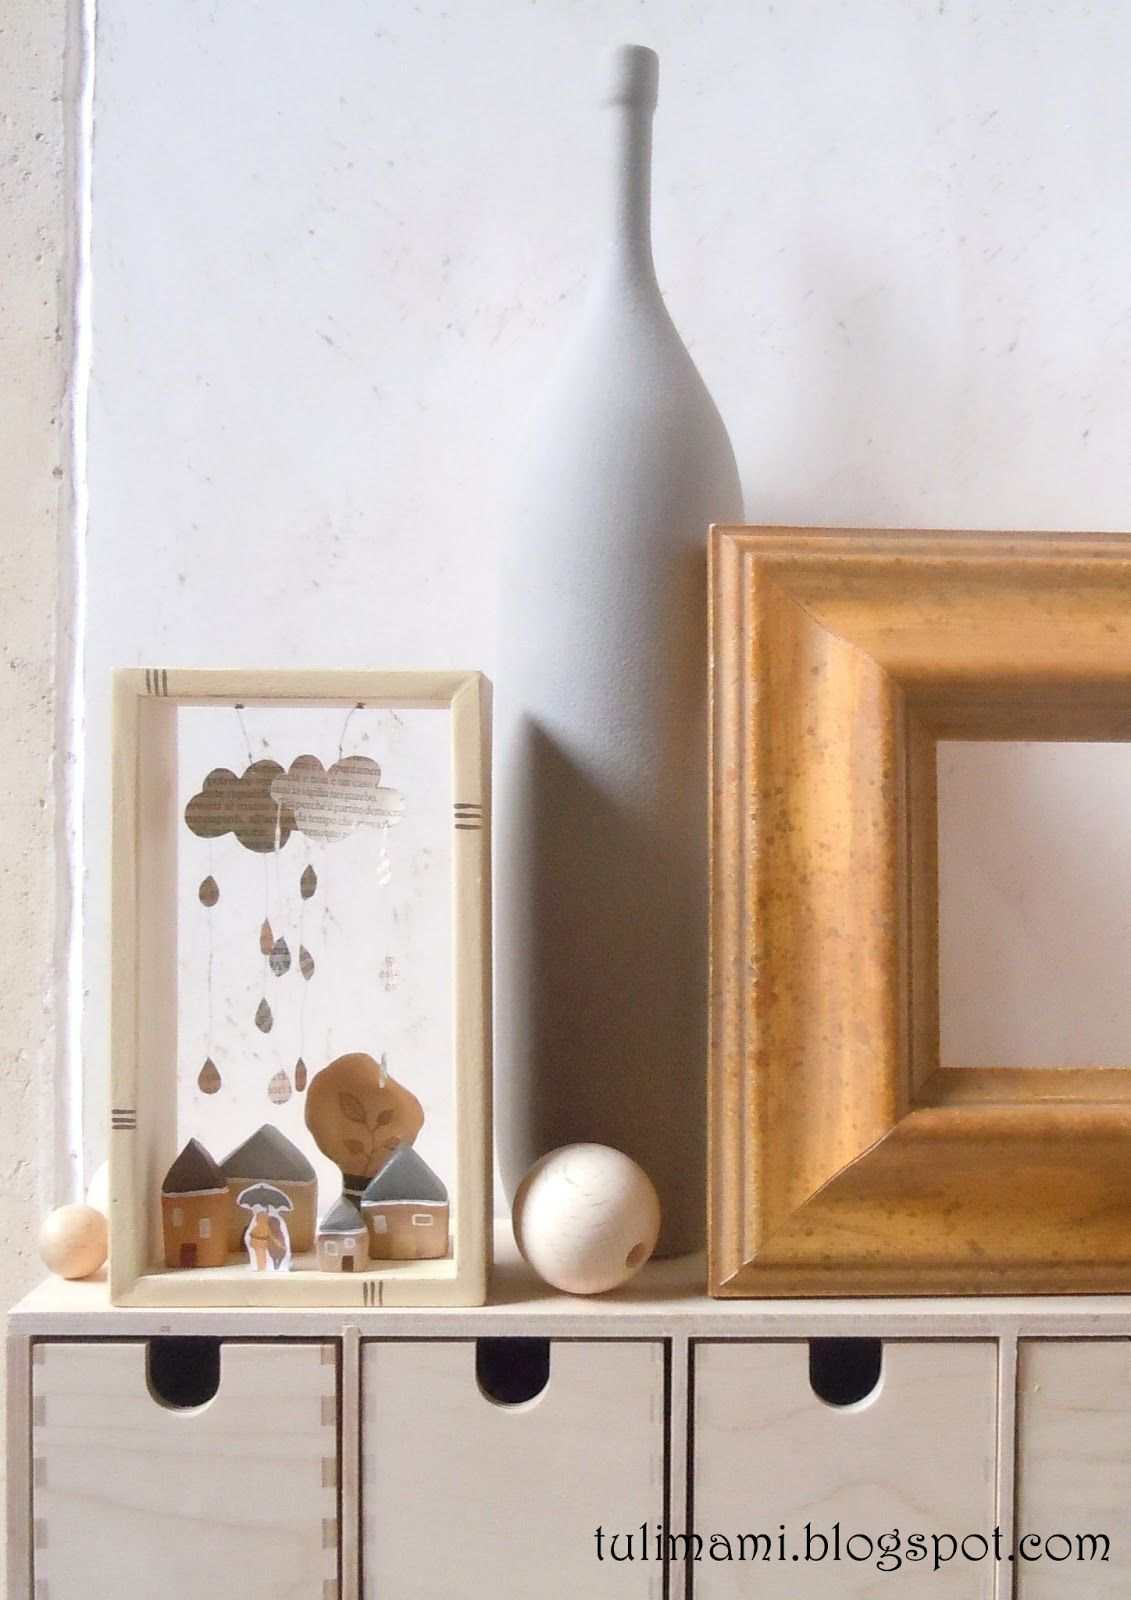 Tulimami Shadow Box Houses Pinterest Shadow Box Box And Craft